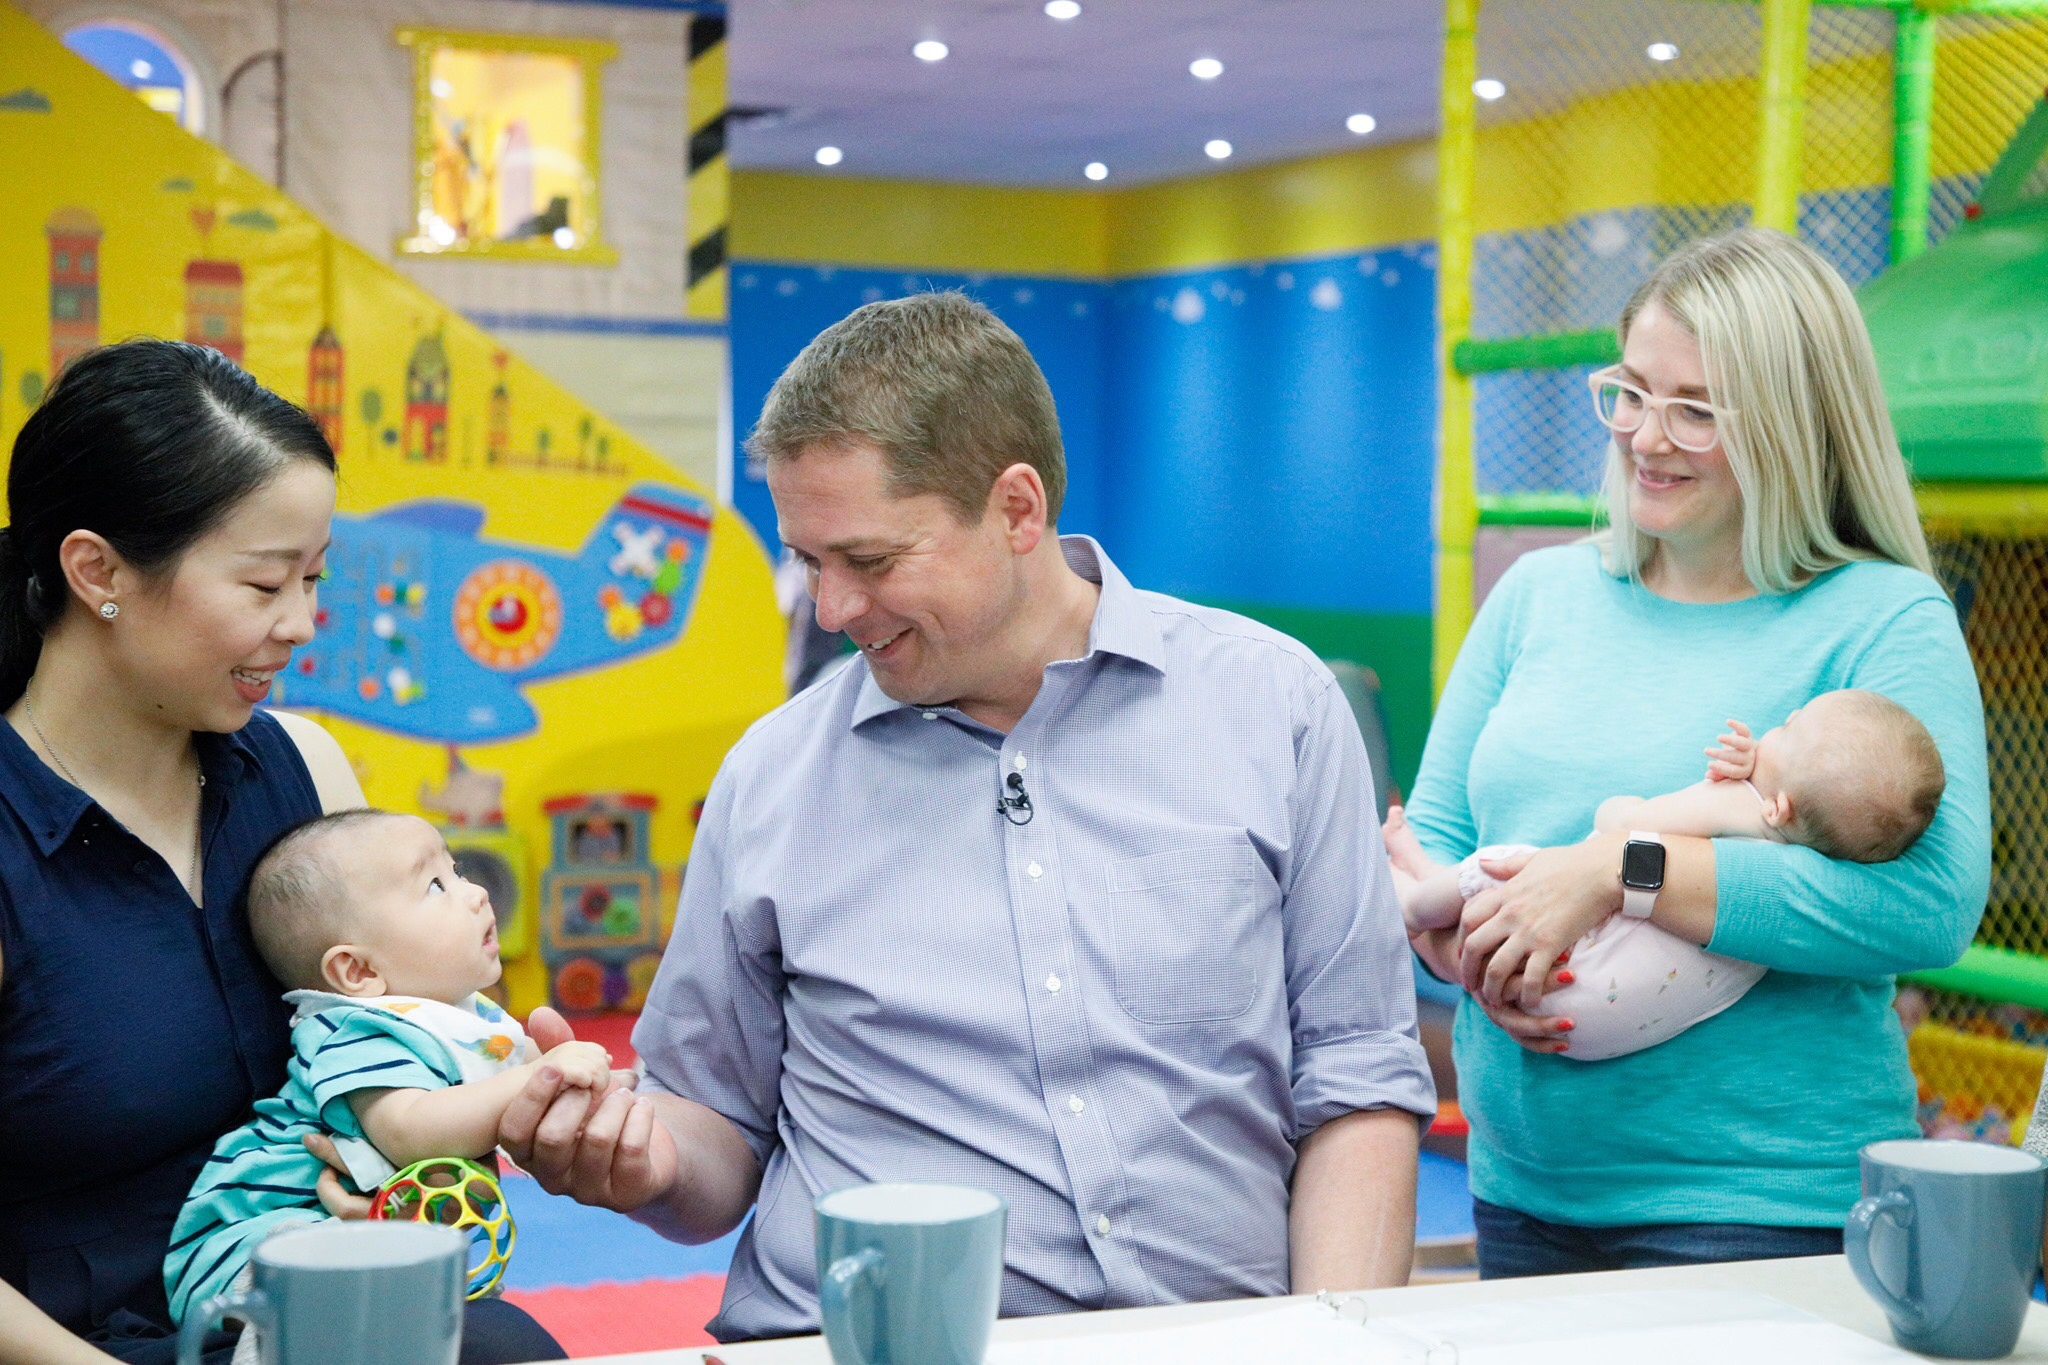 New parents to save up to $4,000 under Scheer maternity plan